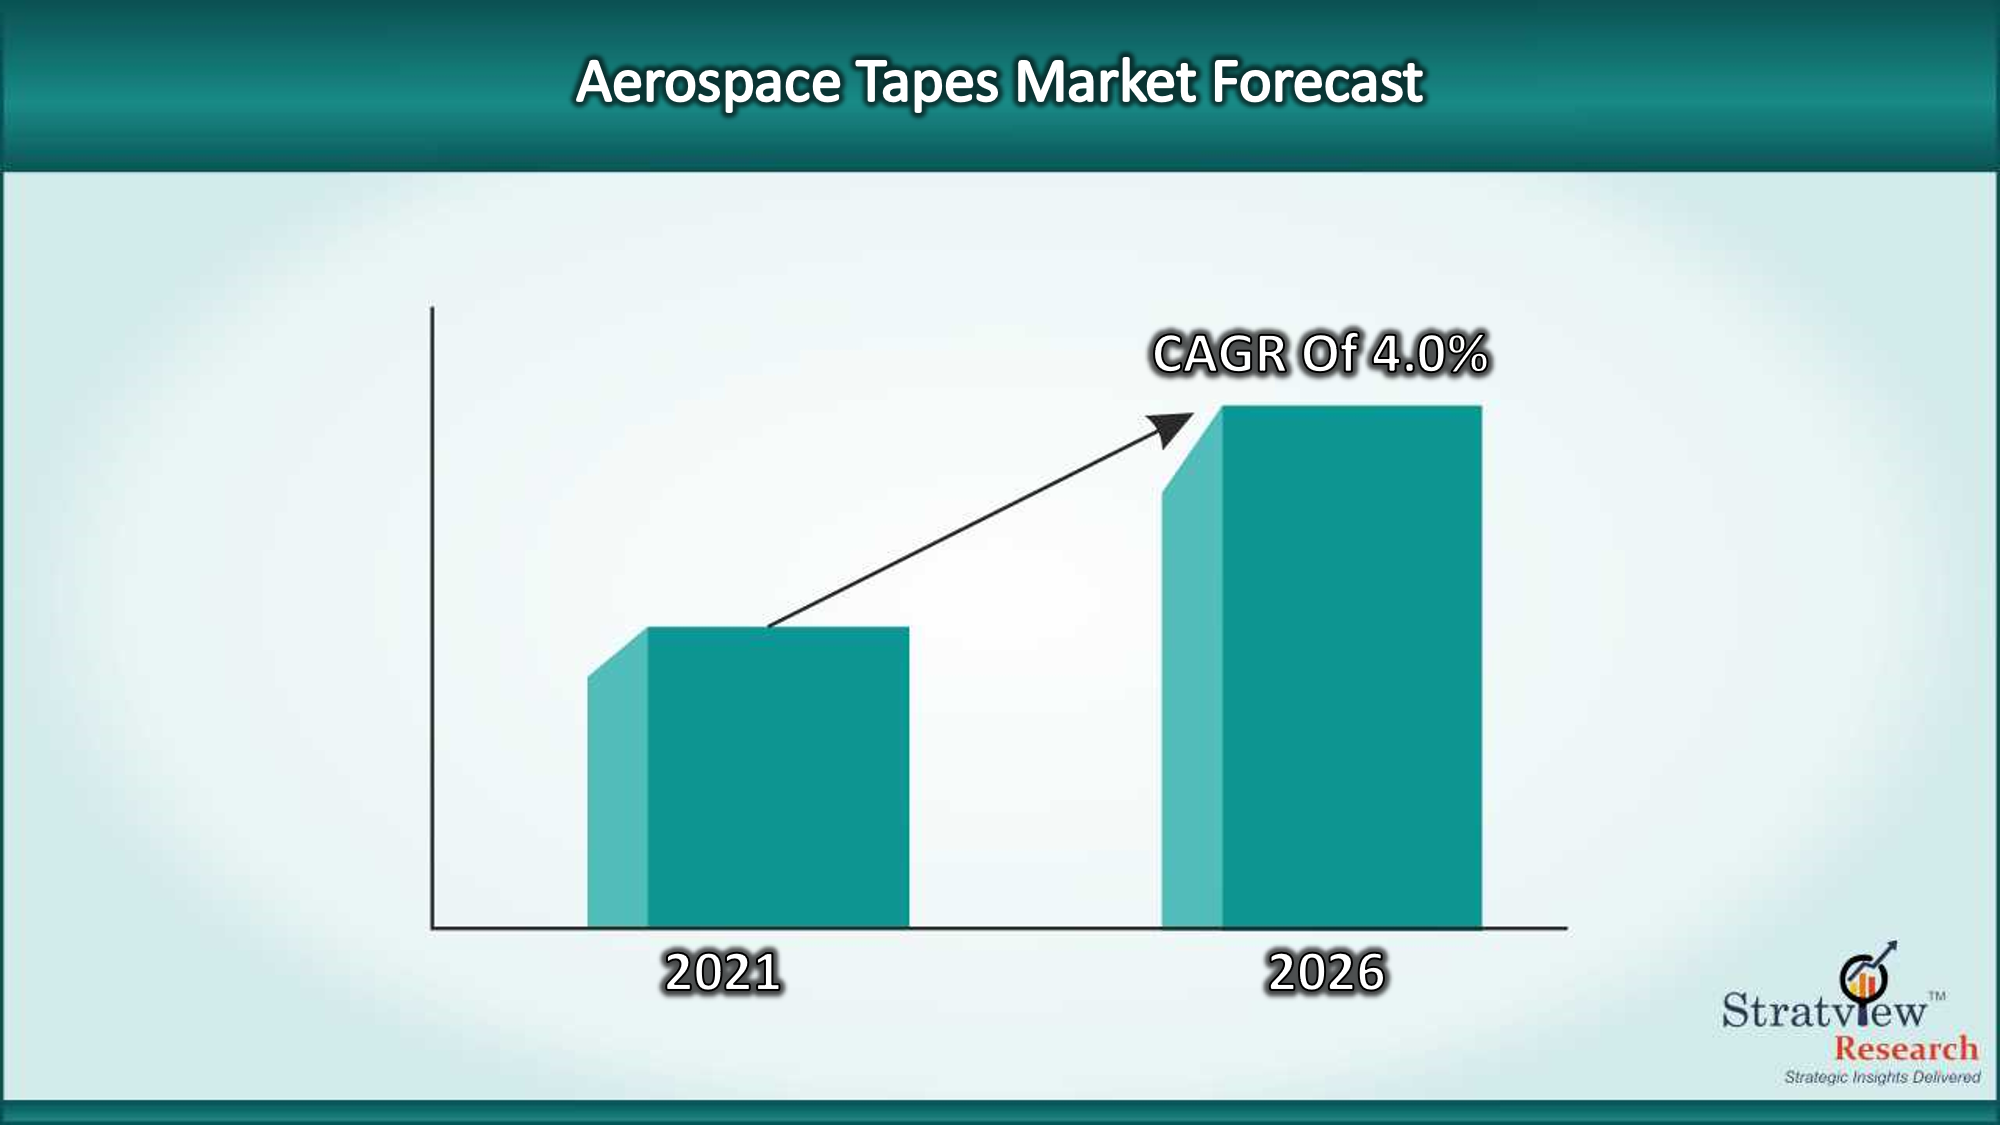 Aerospace Tapes Market